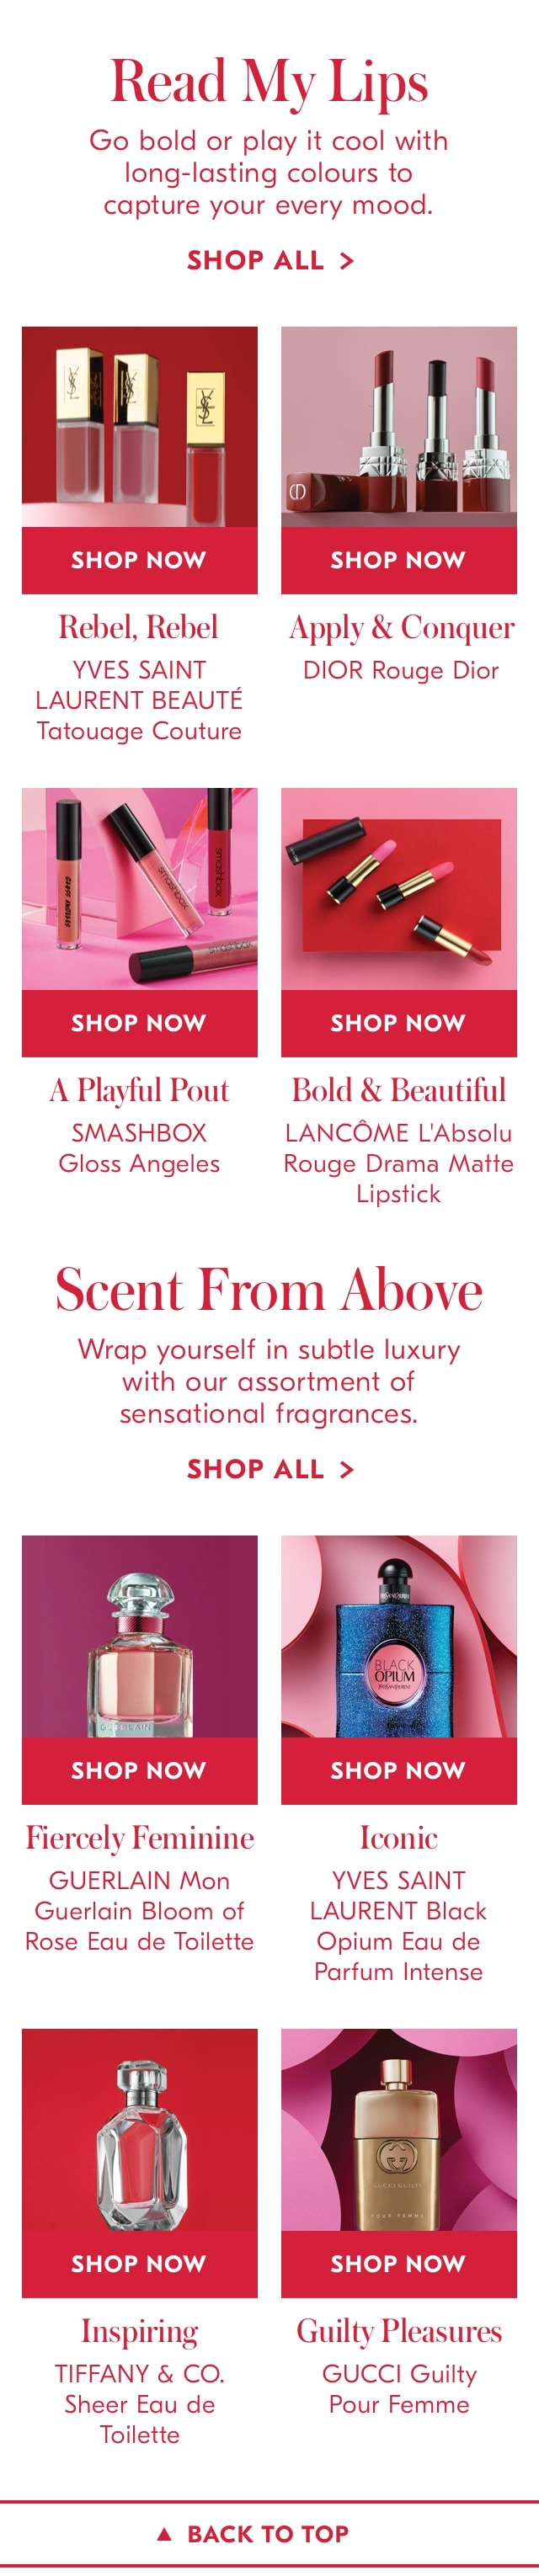 Lips and Scents